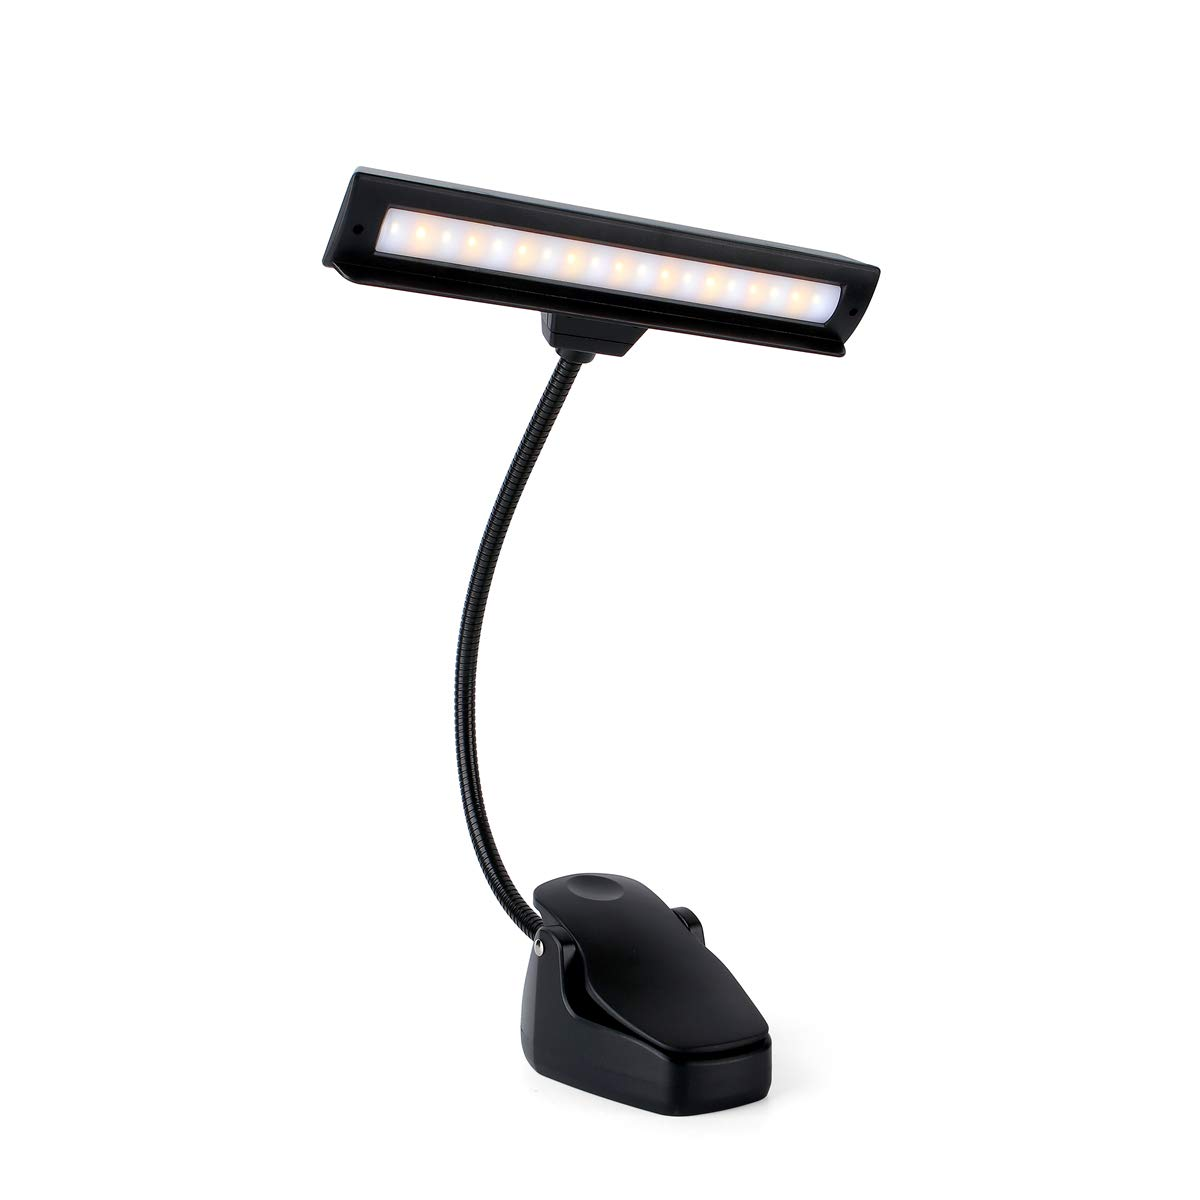 Rechargeable Music Stand Light, 19 LEDs Clip On Reading Light - 3 Level Brightness Settings, 3 Color Temperature Optional (Warm/Cool White/Natural Light Color), Perfect for Piano, Reading, Sewing by Glovion